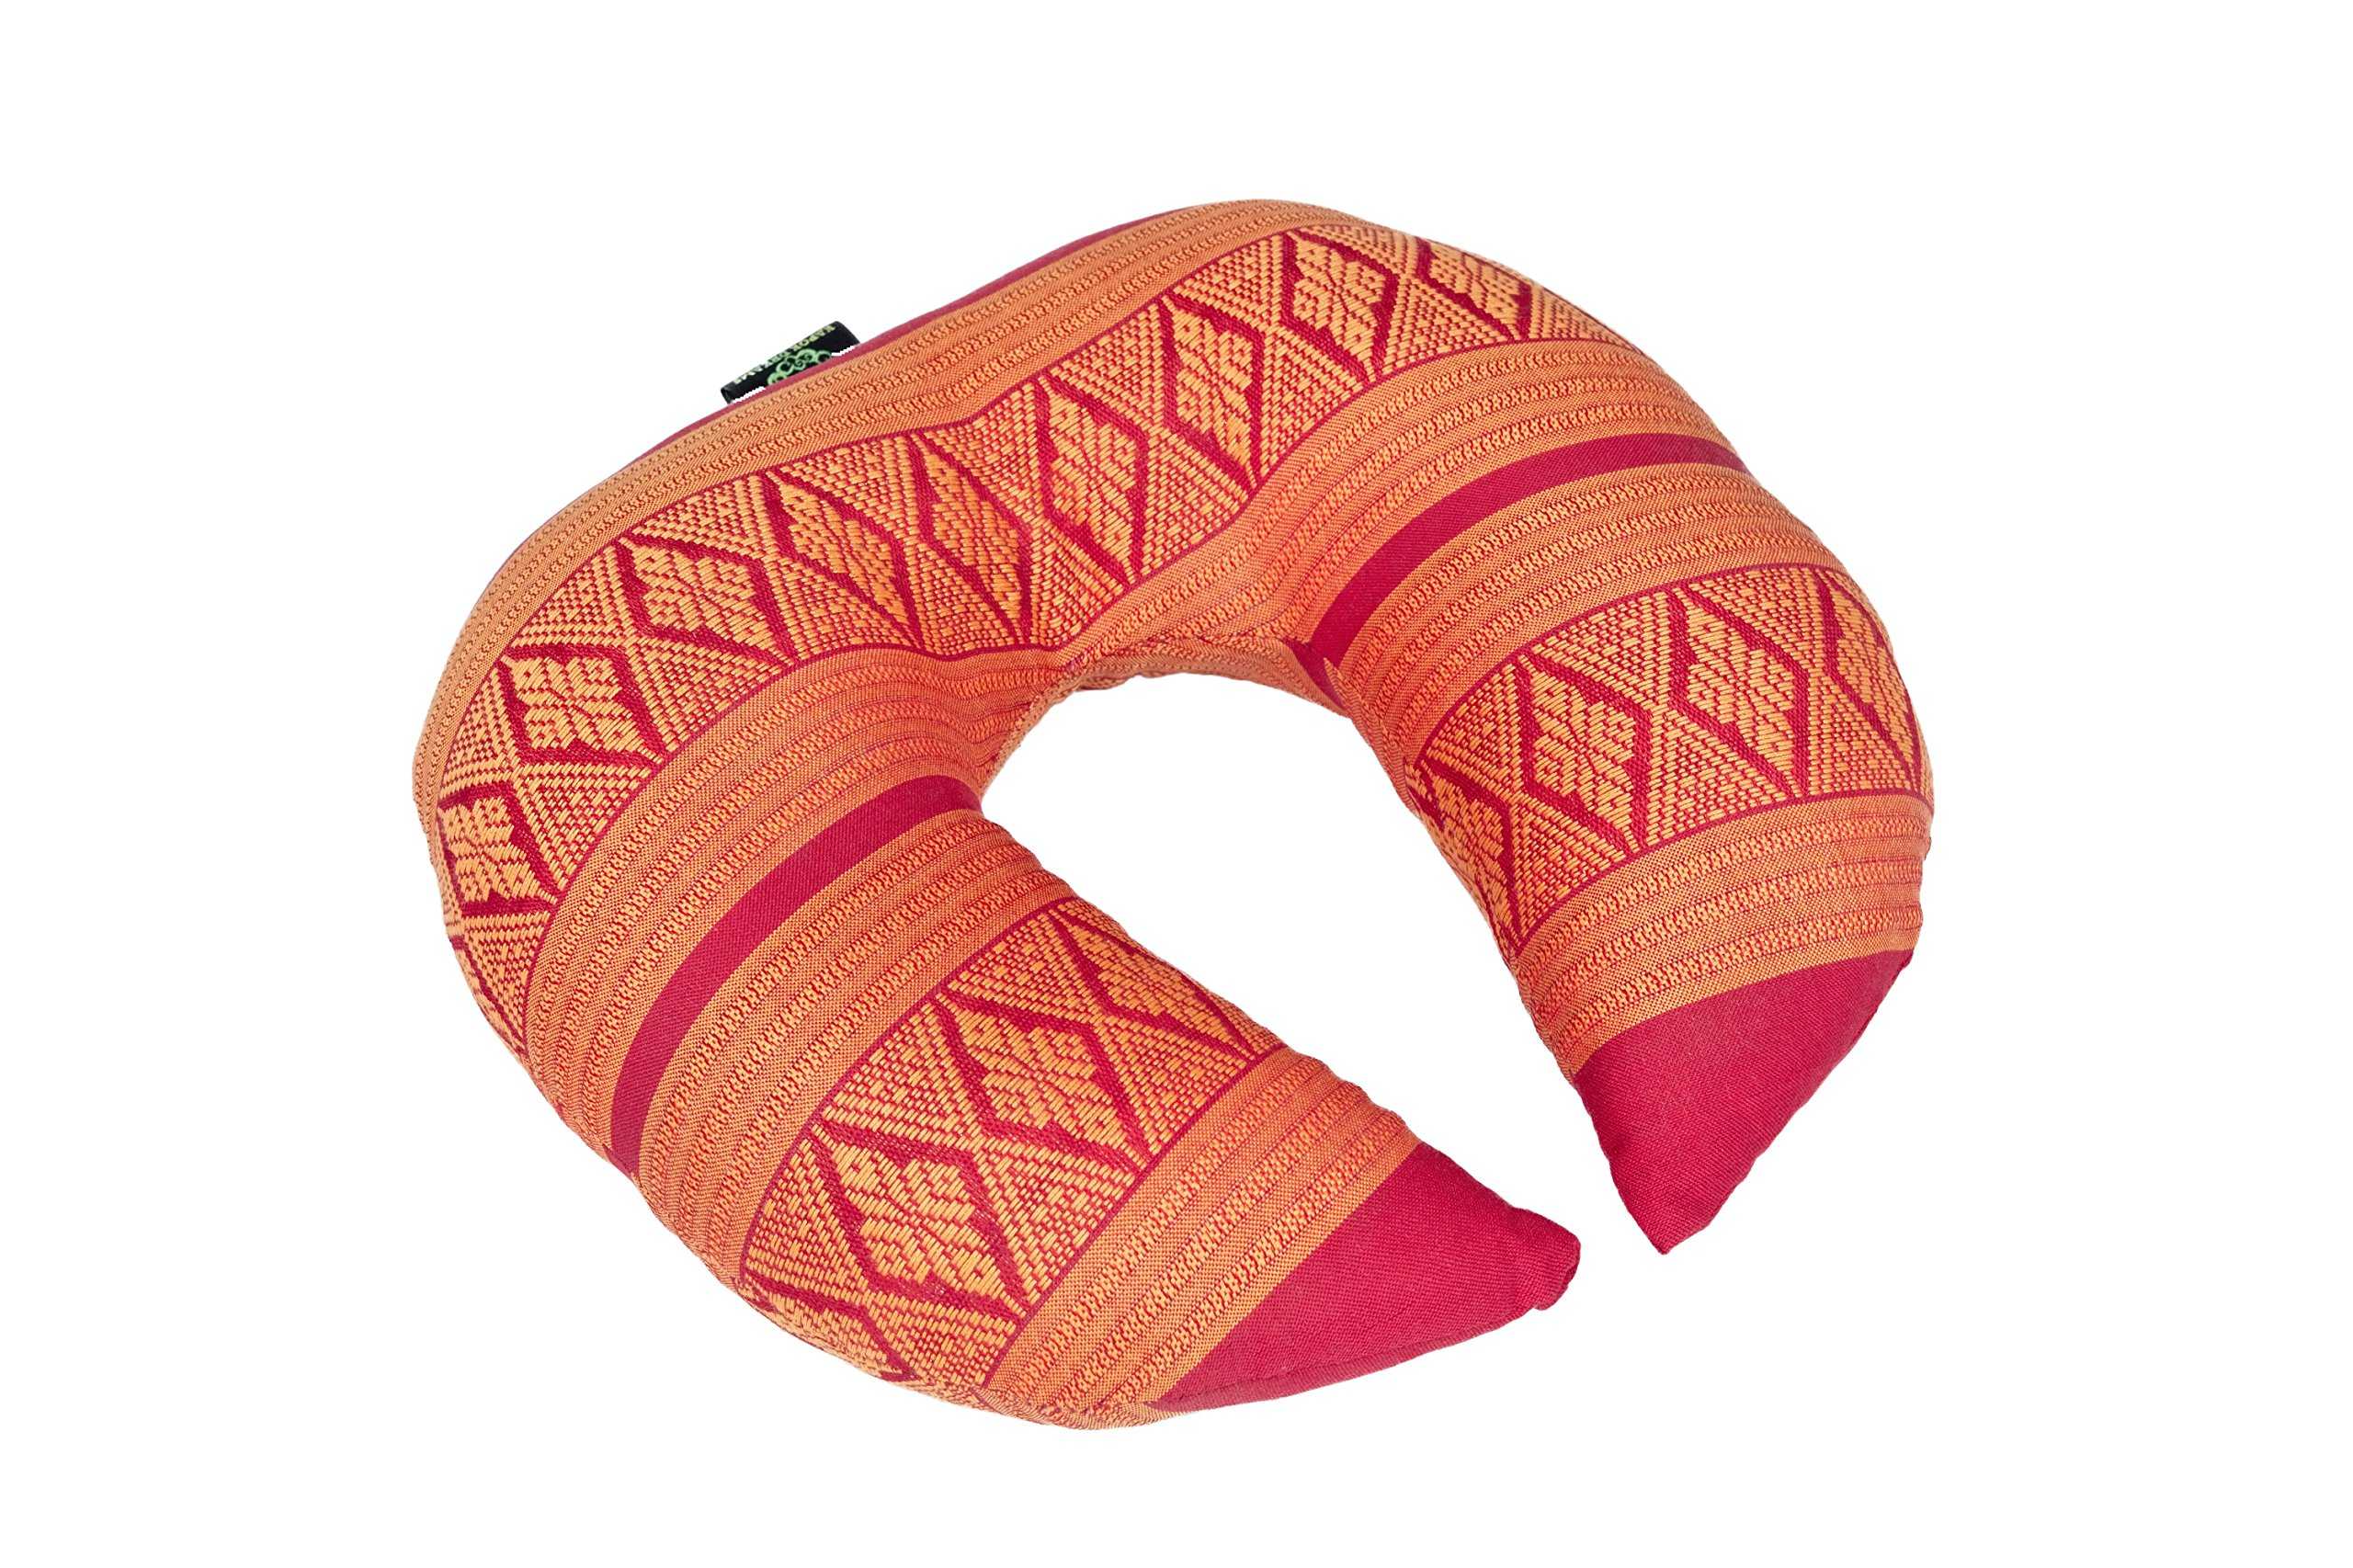 Face Cradle Cushion, 12''x11''x4'', Massage Pillow 100% Kapok Filled Head Rest Orange & Red Thai Design.Neck Cushion